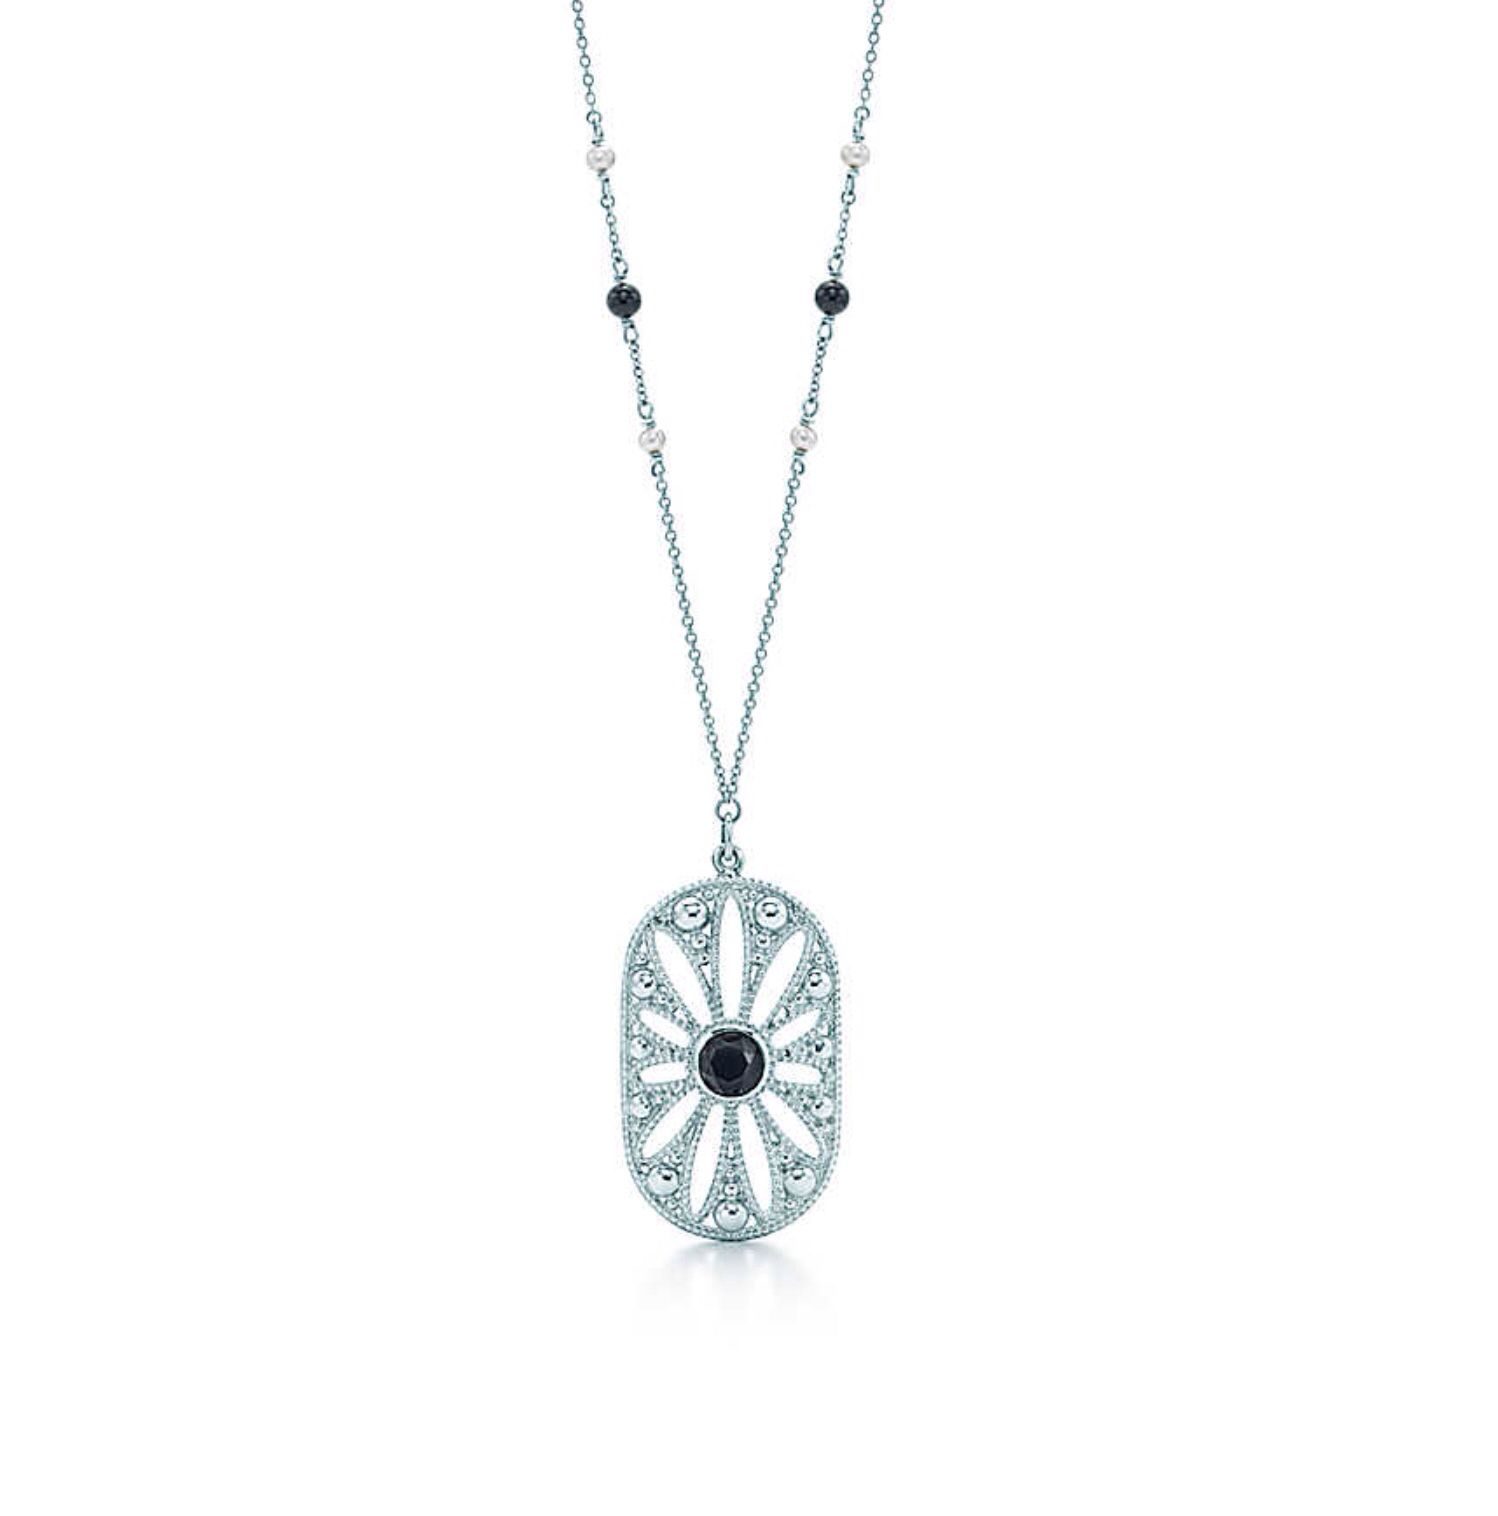 2af7d5125 Tiffany & Co, Ziegfeld Collection Daisy Pendant. Pendant in sterling silver  on a 24